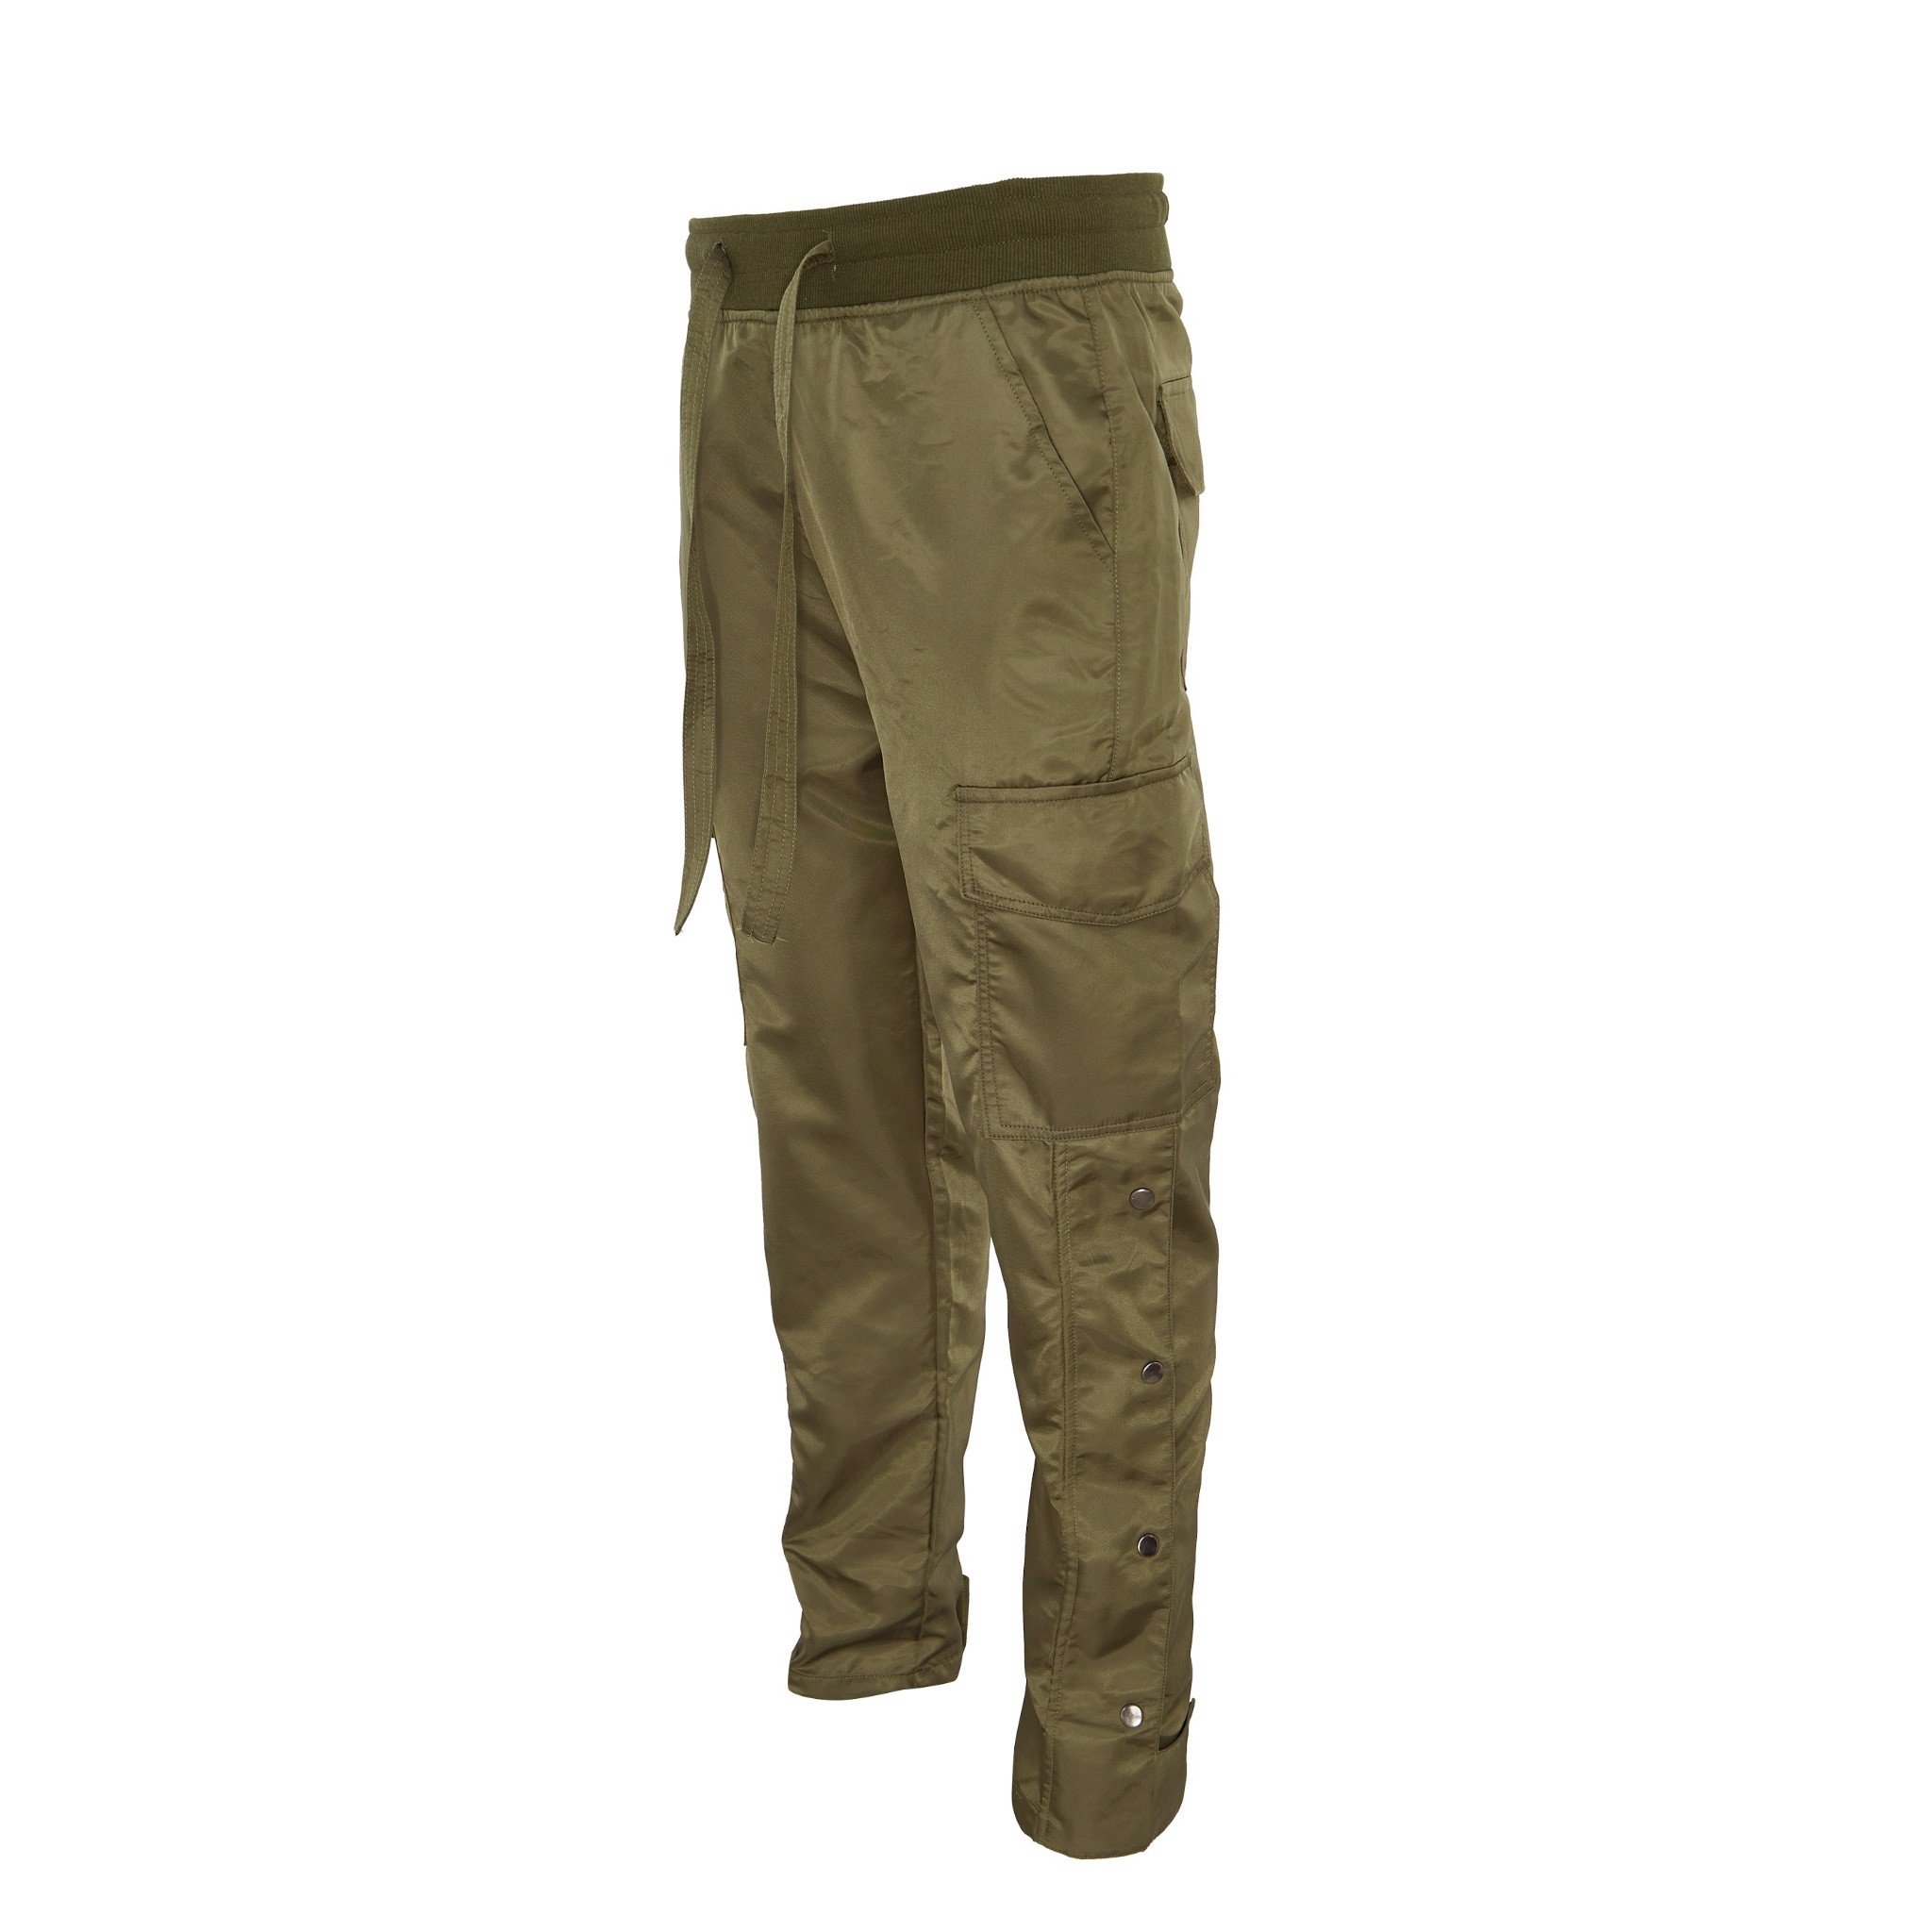 OLIVE/SNAP ZIPPER CARGO PANT